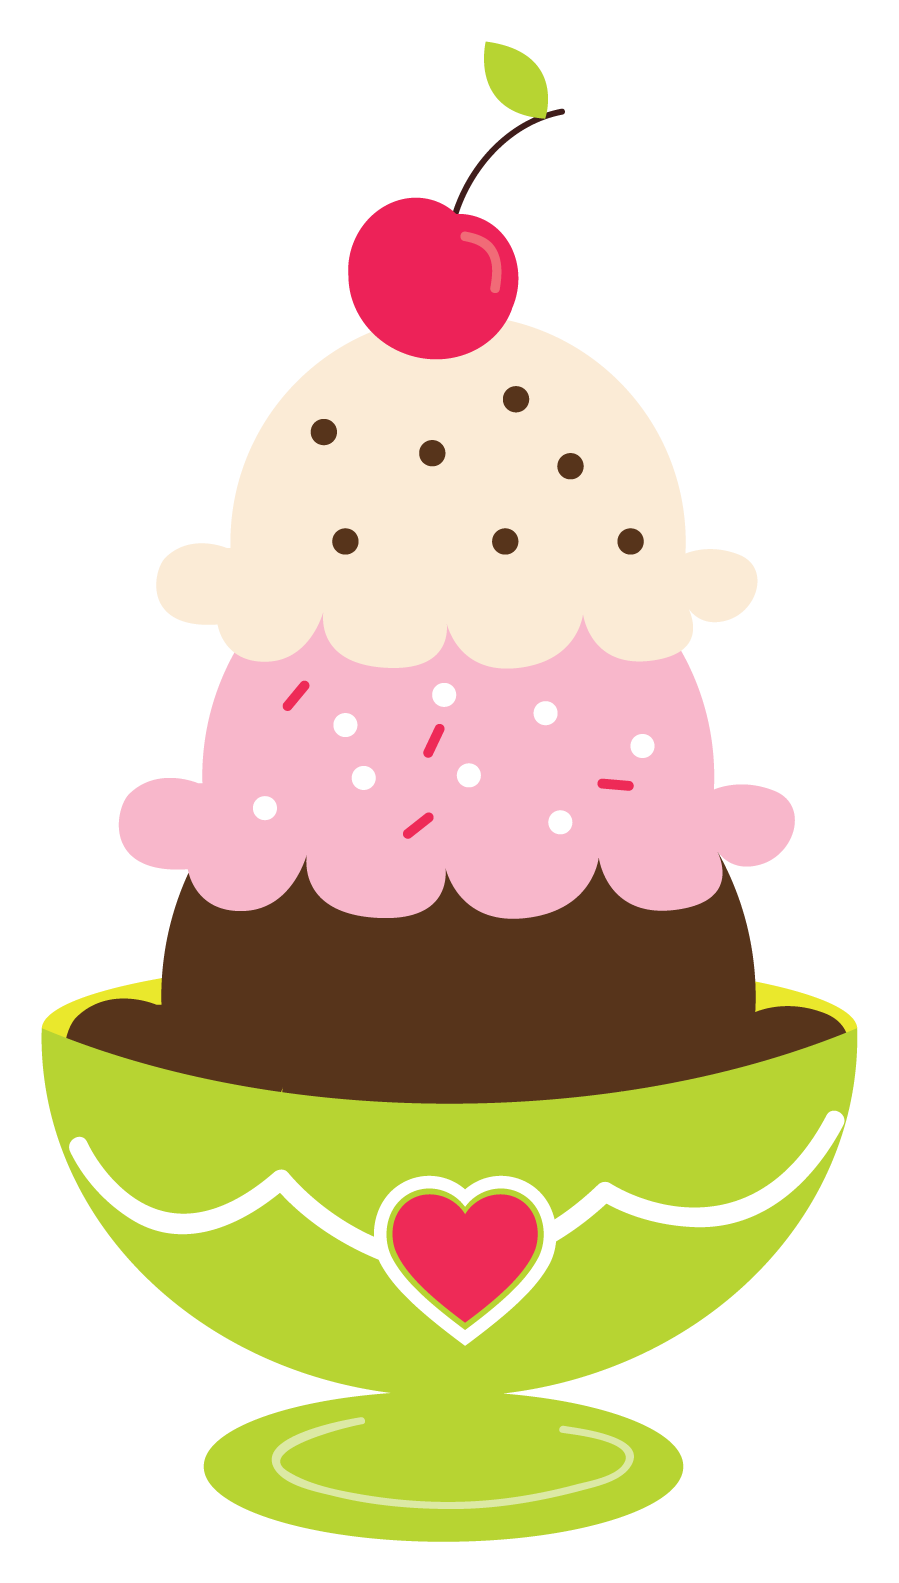 Clipart of ice cream sundaes picture freeuse download Ice Cream Sundae Clipart | Printables and Fonts | Ice cream cone ... picture freeuse download